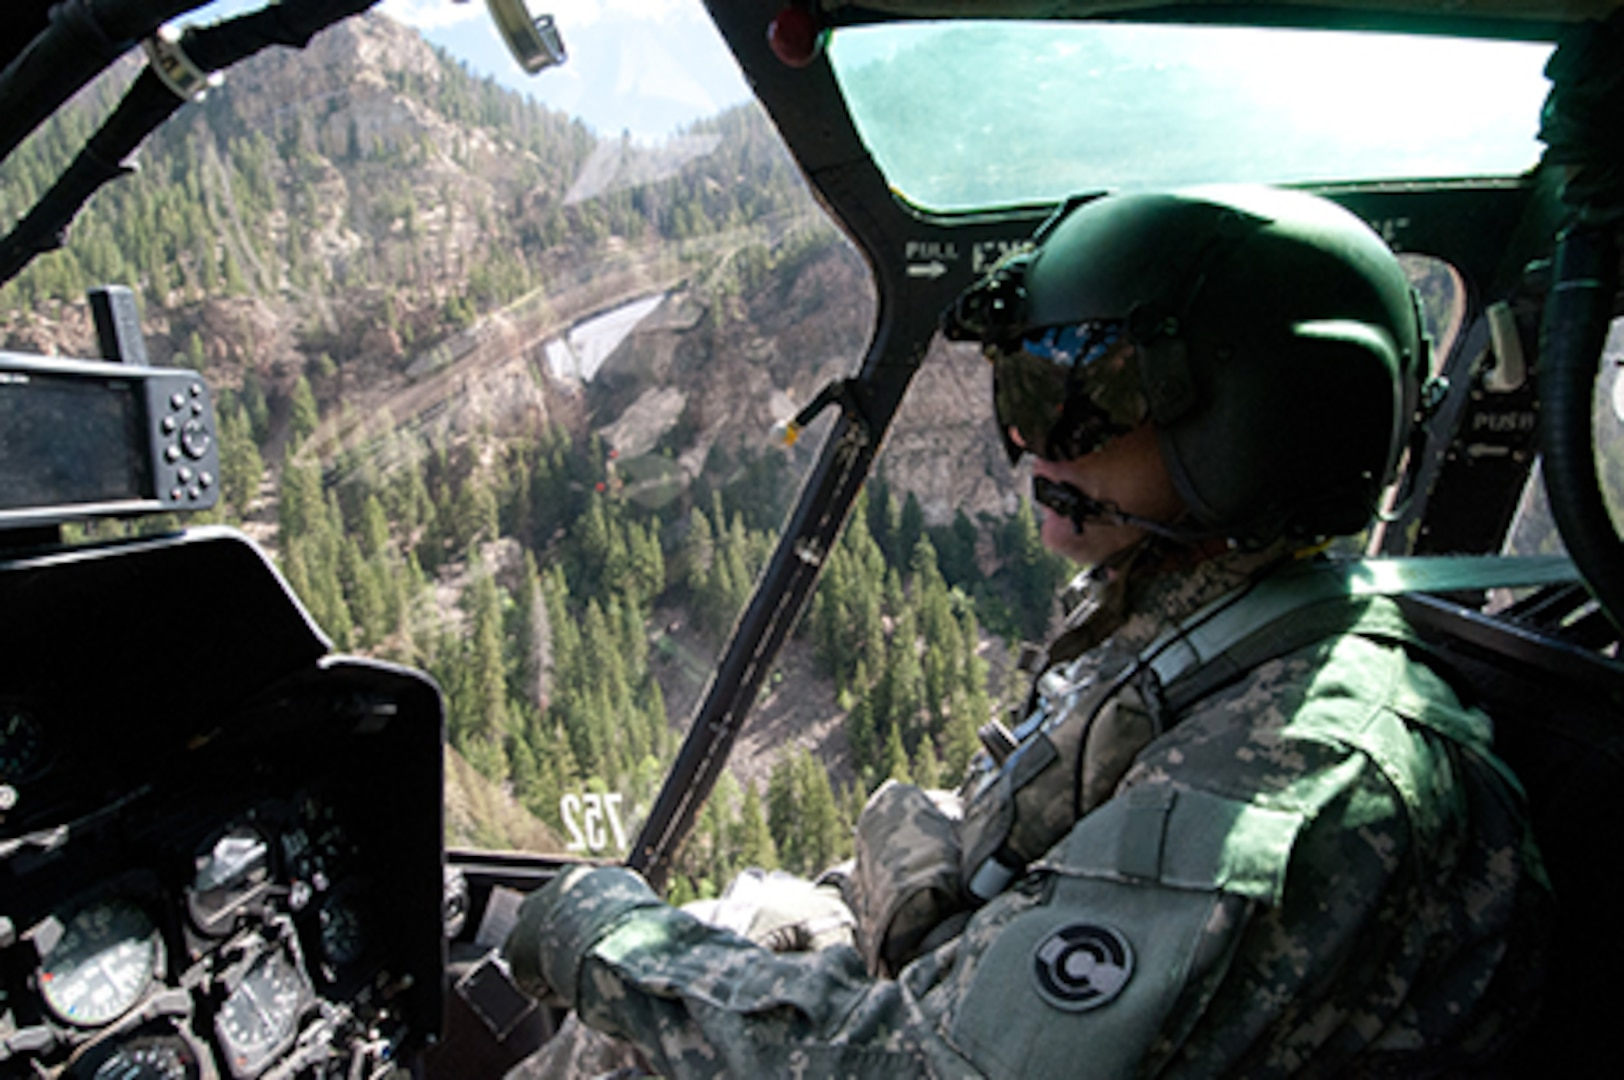 Colorado Army National Guard Maj. Tony Somogyi pilots his OH-58 Kiowa helicopter above the Rocky Mountains, Aug. 23, 2011. Somogyi is the executive officer of the COARNG's High-altitude Army National Guard Aviation Training Site in Gypsum, Colo. Somogyi has extensive experience as a scout and as a search-and-rescue/search-and-recovery pilot. (Photo © 2011 Deborah Grigsby Illustrative Photography/Used with permission)